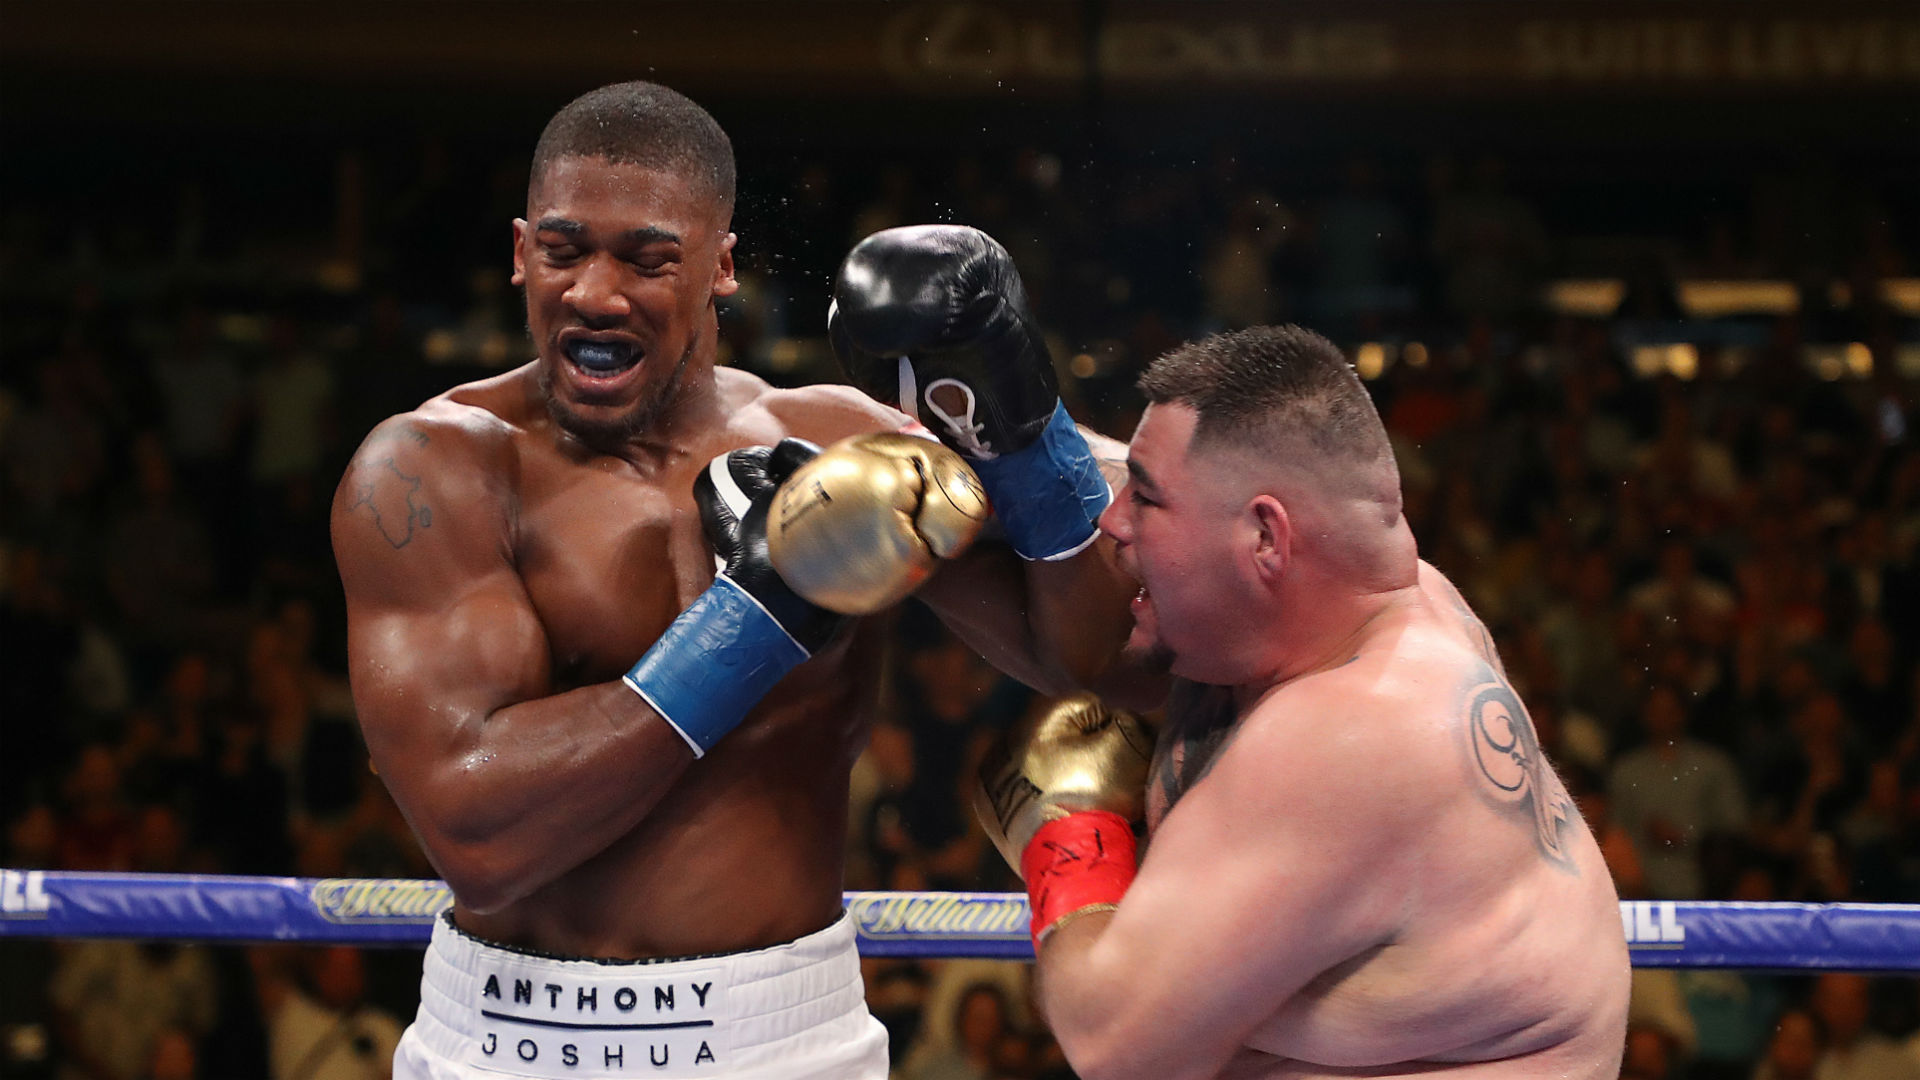 Ahead of Anthony Joshua rematch, Andy Ruiz Jr. wants more than '15 minutes of fame'